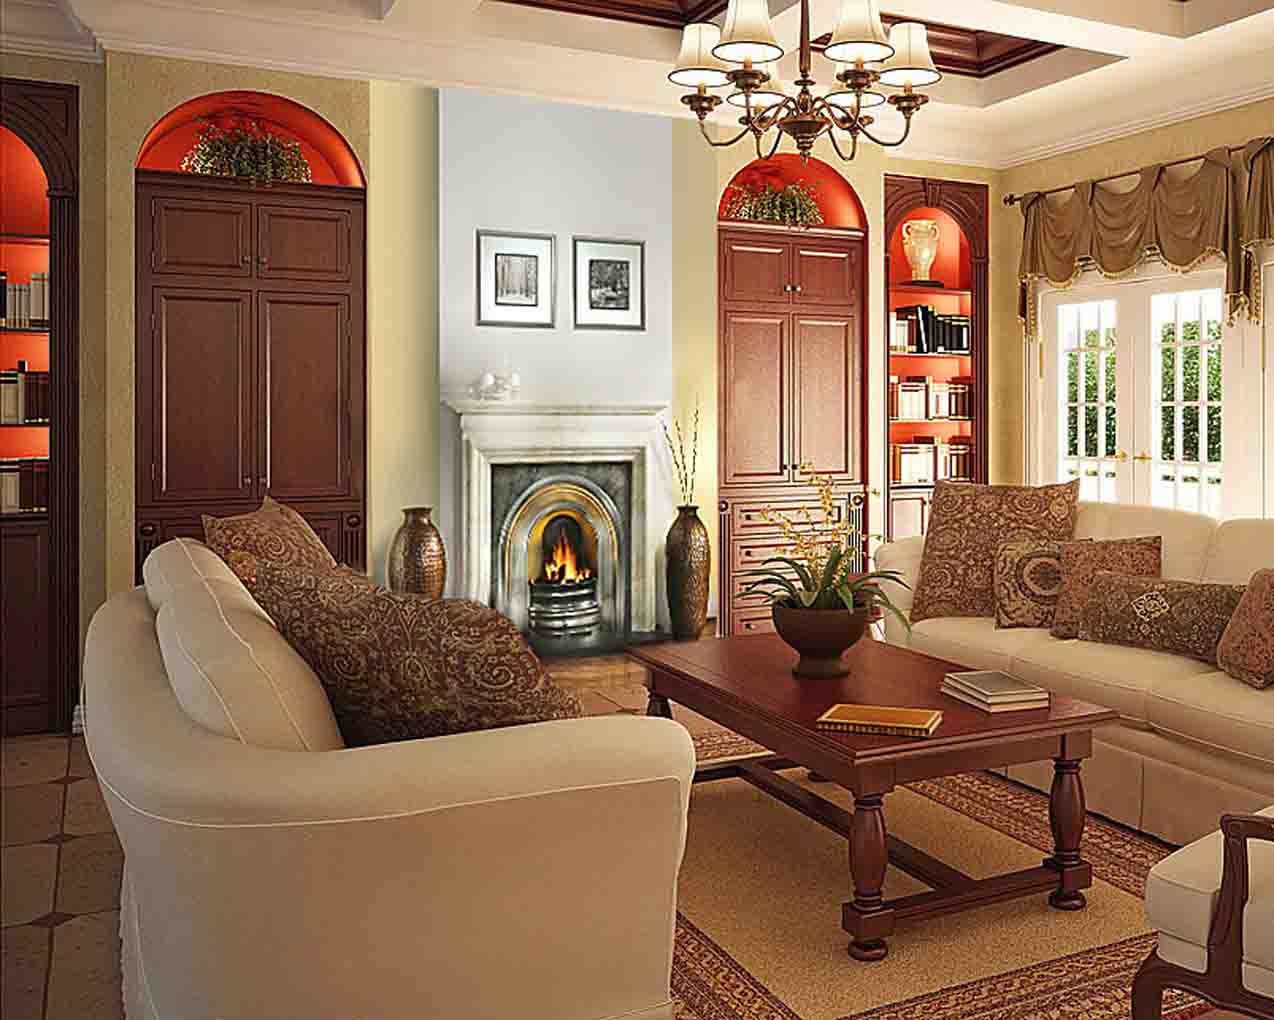 Home decor ideas home and living for Beautiful living room decor ideas